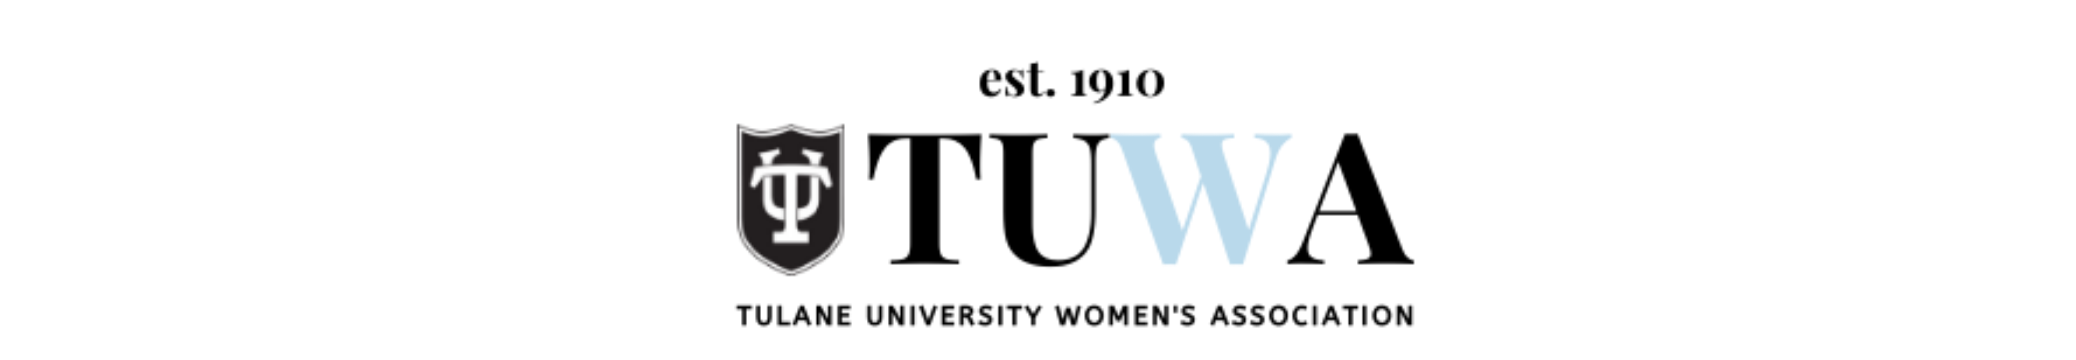 Tulane University Women's Association